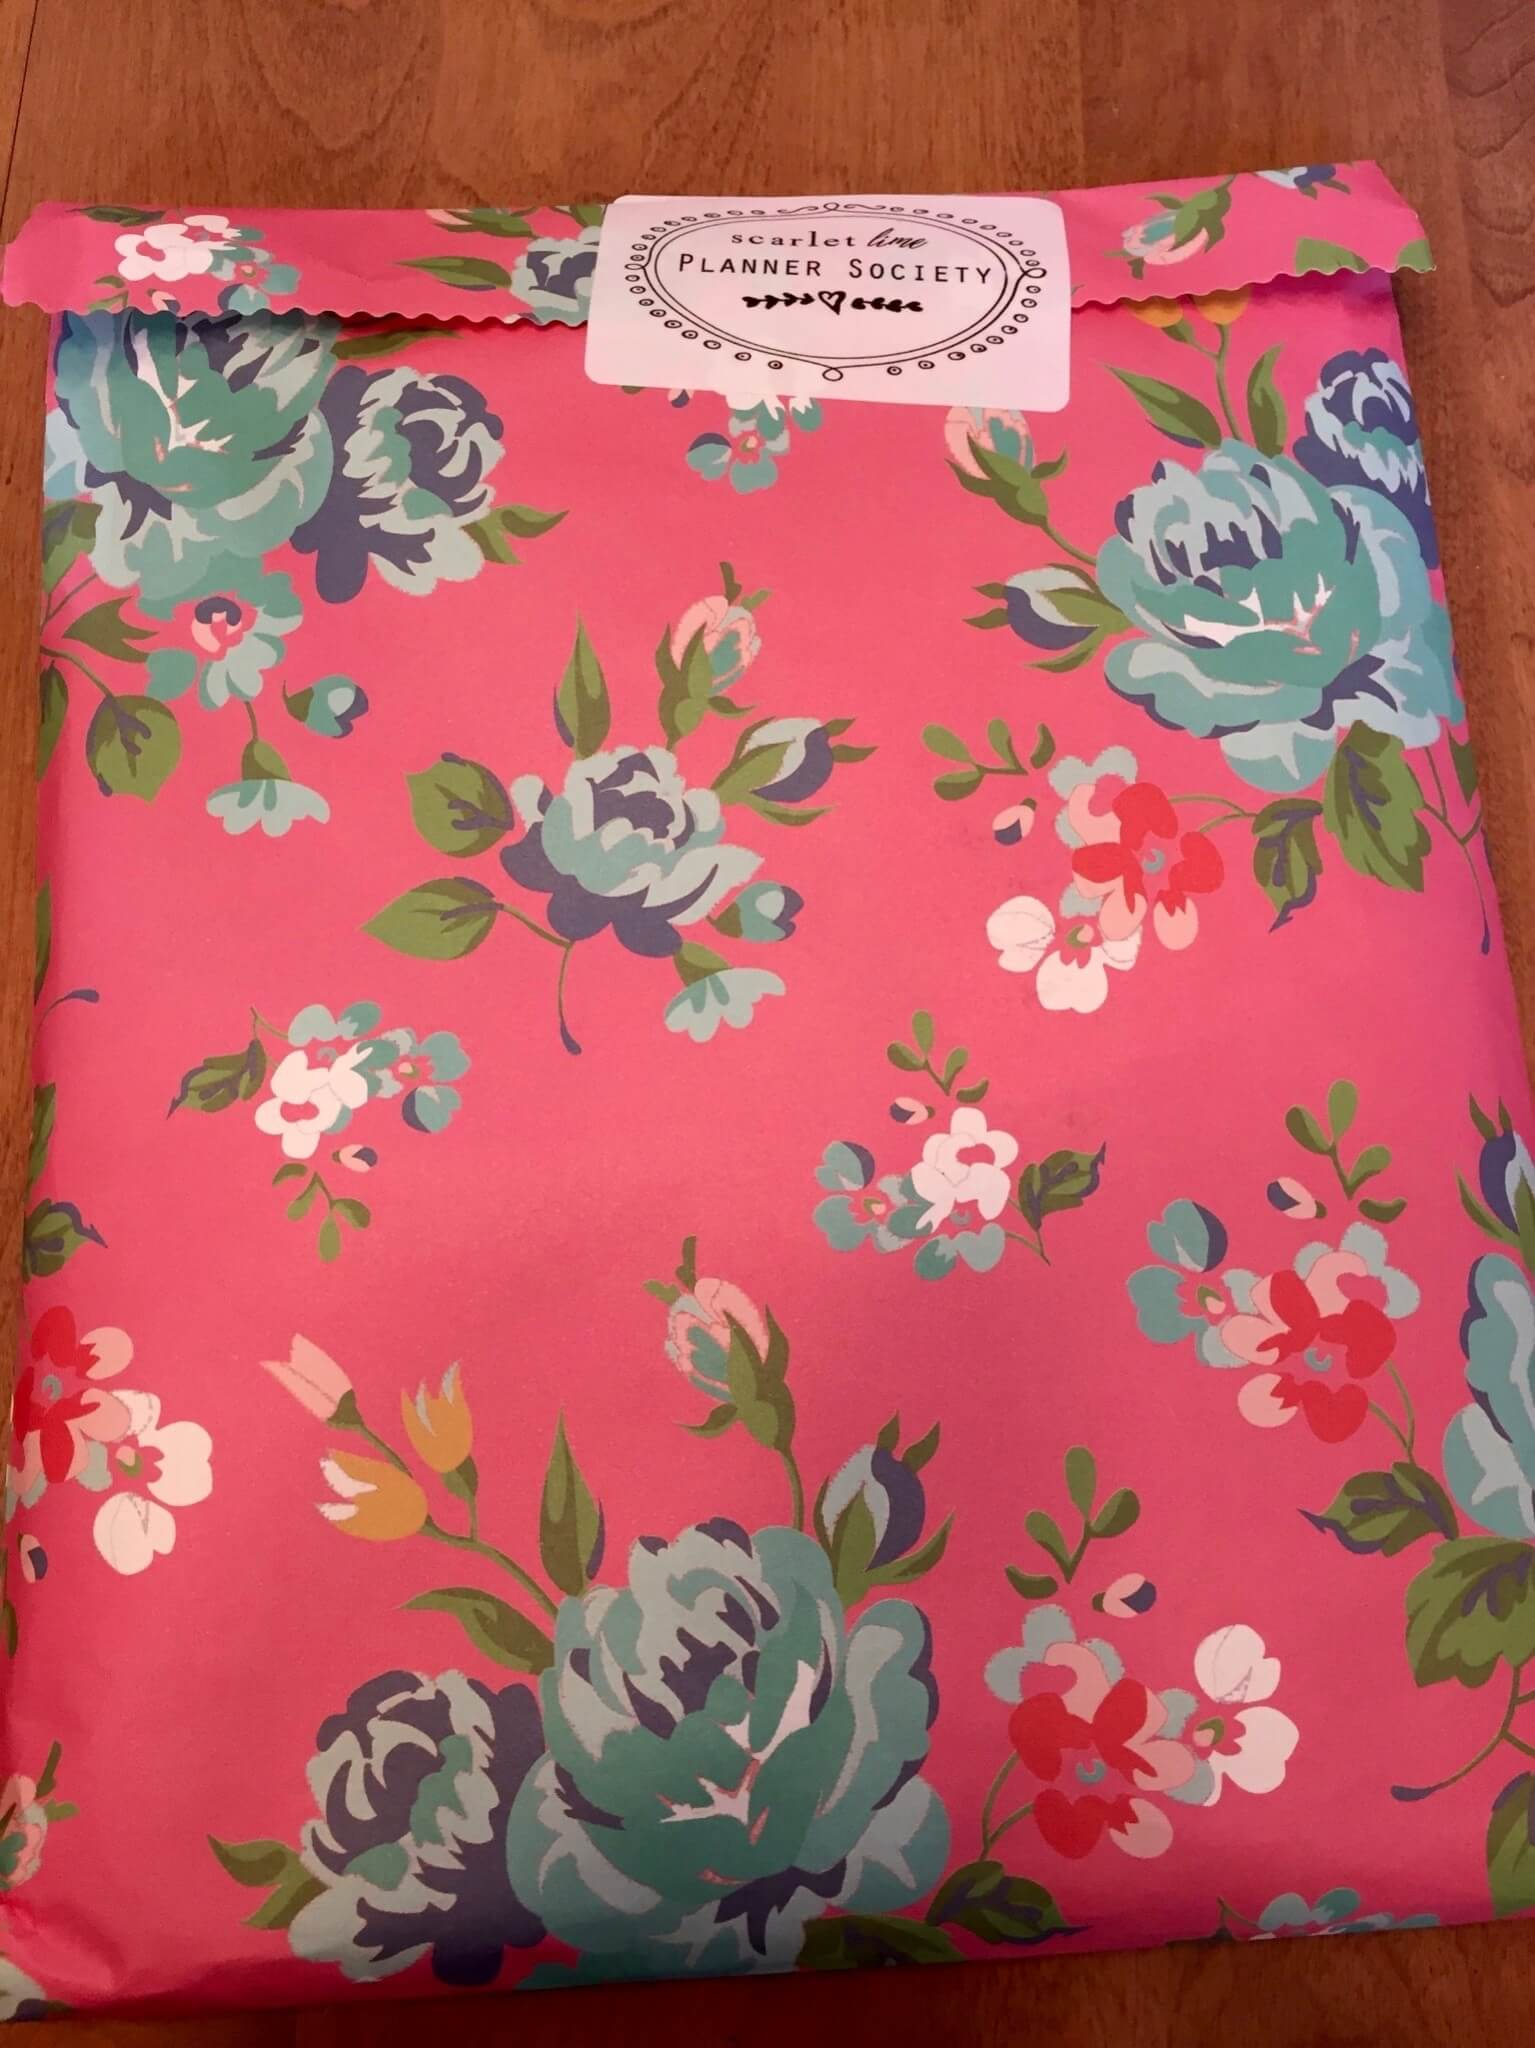 Scarlet Lime Planner Society Kit Club June 2016 unboxed